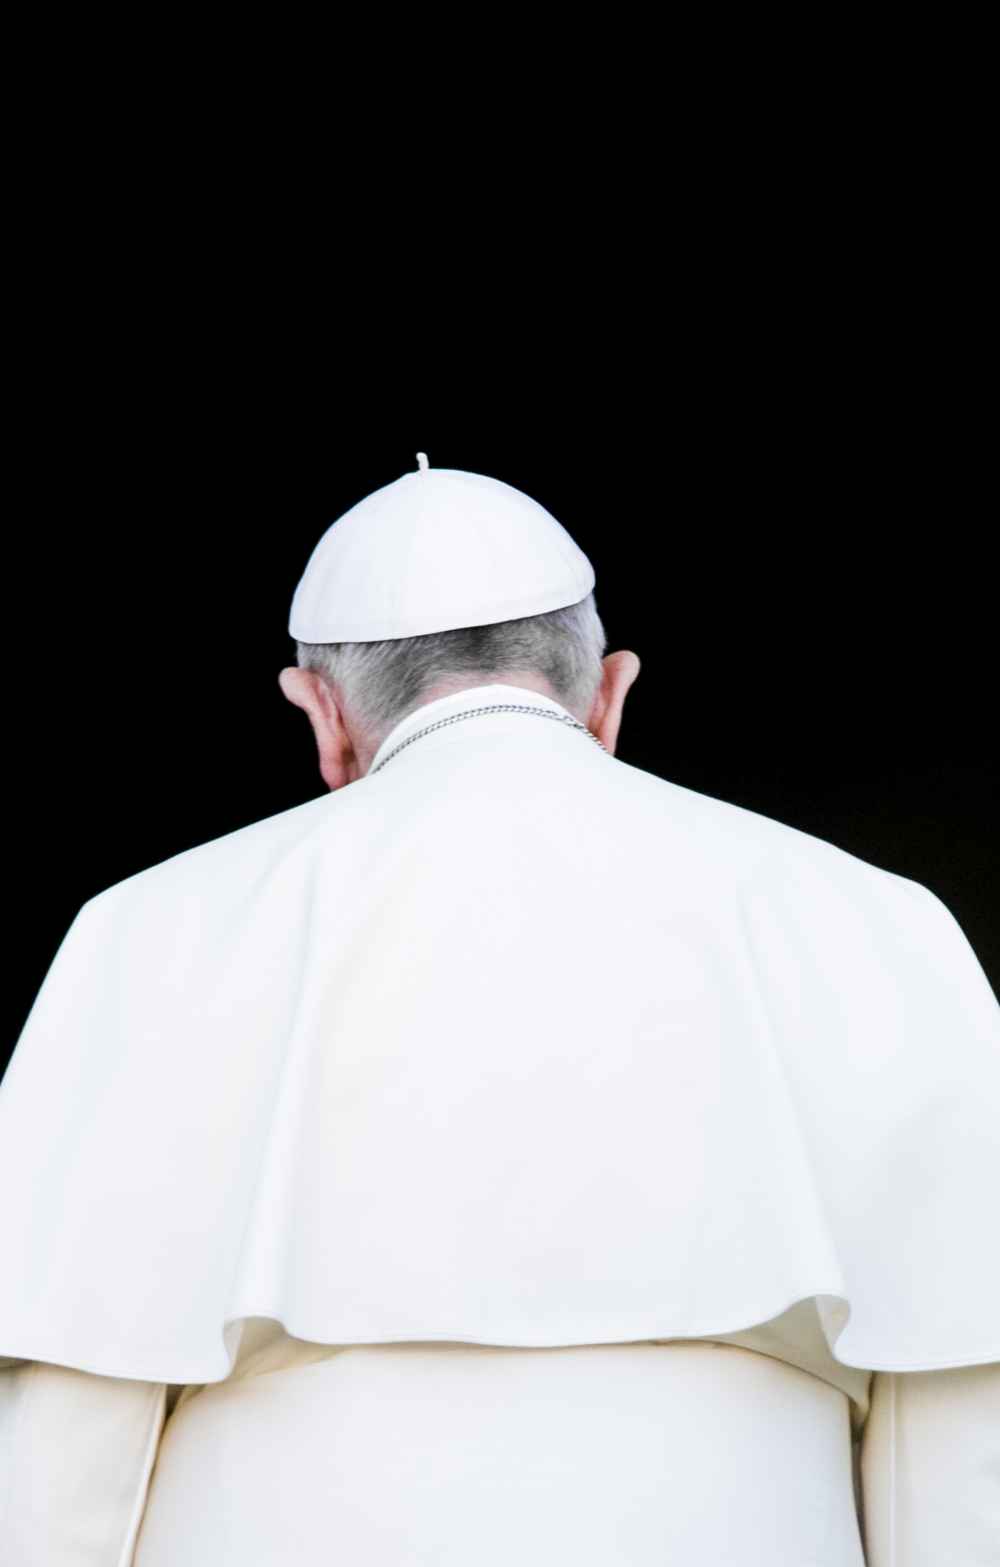 Pope Francis view from rear view. PHOTO RETRIEVED FROM THINKSTOCK BY GETTY IMAGES.